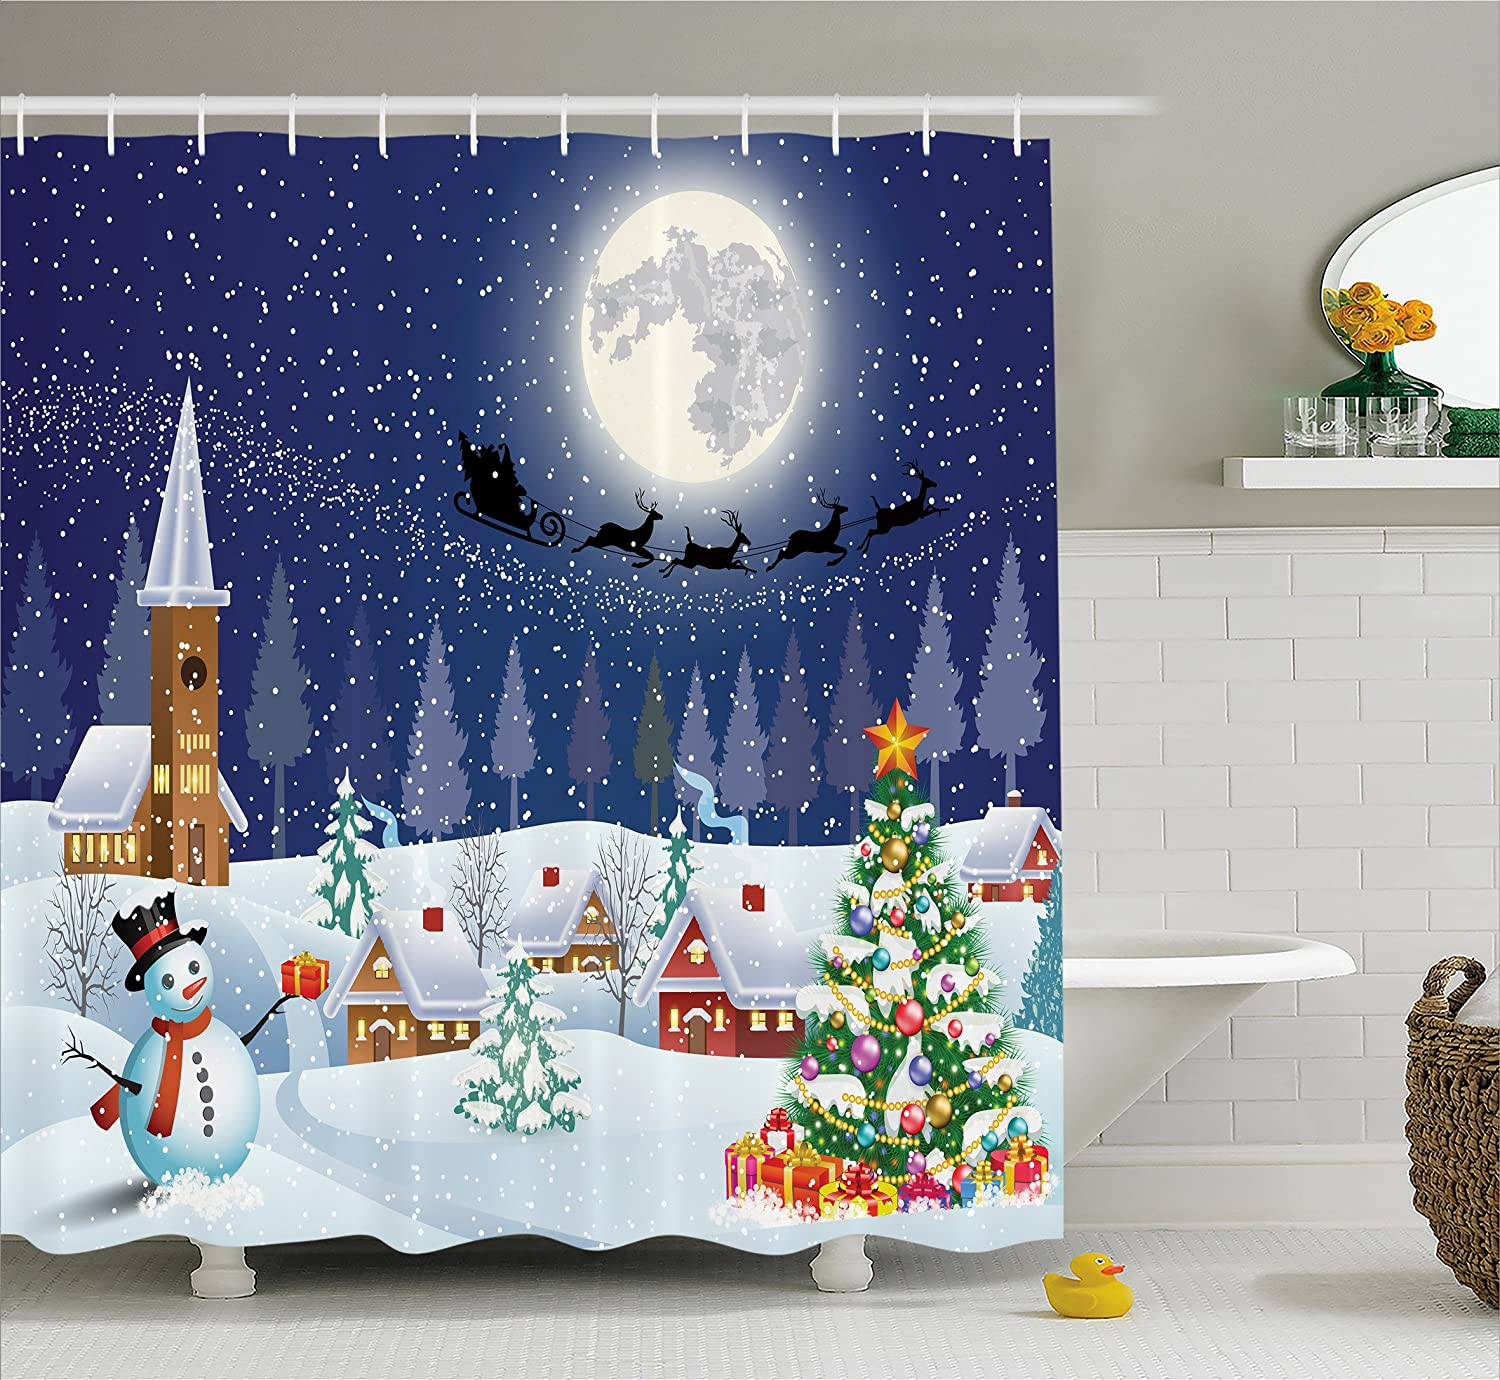 Amazon Christmas Shower Curtain Snowman Bathroom Acessories By Ambesonne Santa Reindeer Eve In Small Town With On Starry Night